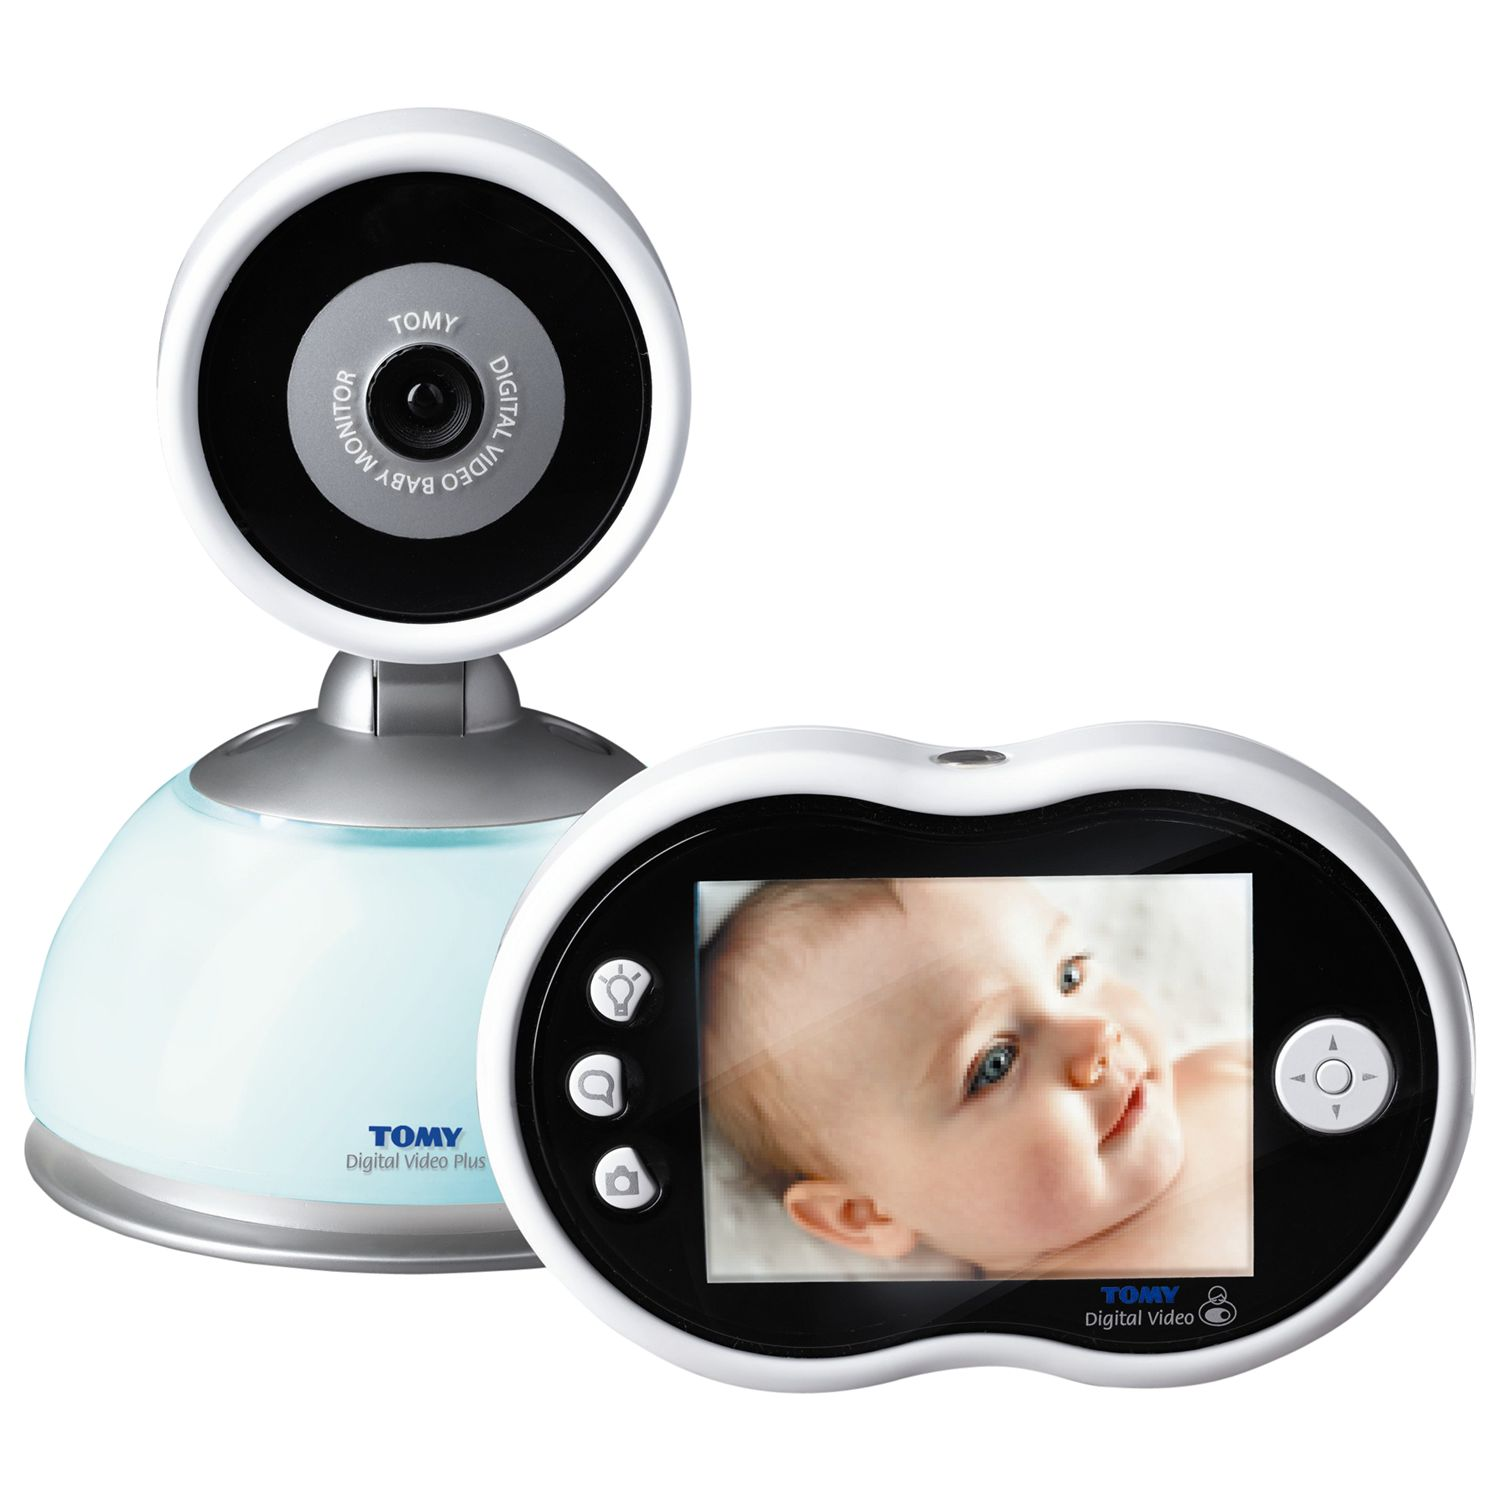 Tomy Digital Video Plus TDV450 Baby Monitor